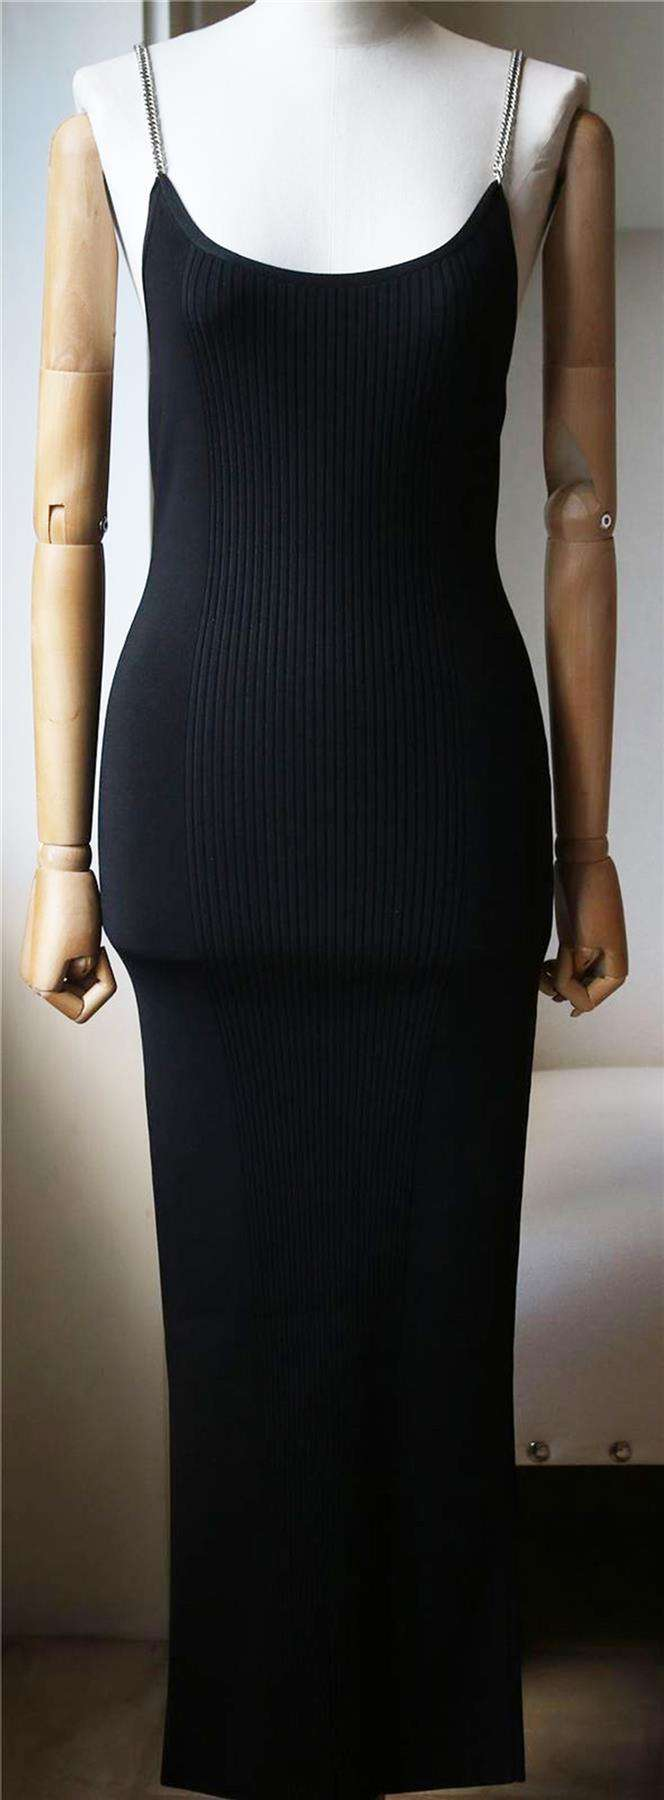 ALEXANDER WANG RIBBED TANK DRESS WITH CHAIN STRAPS SMALL